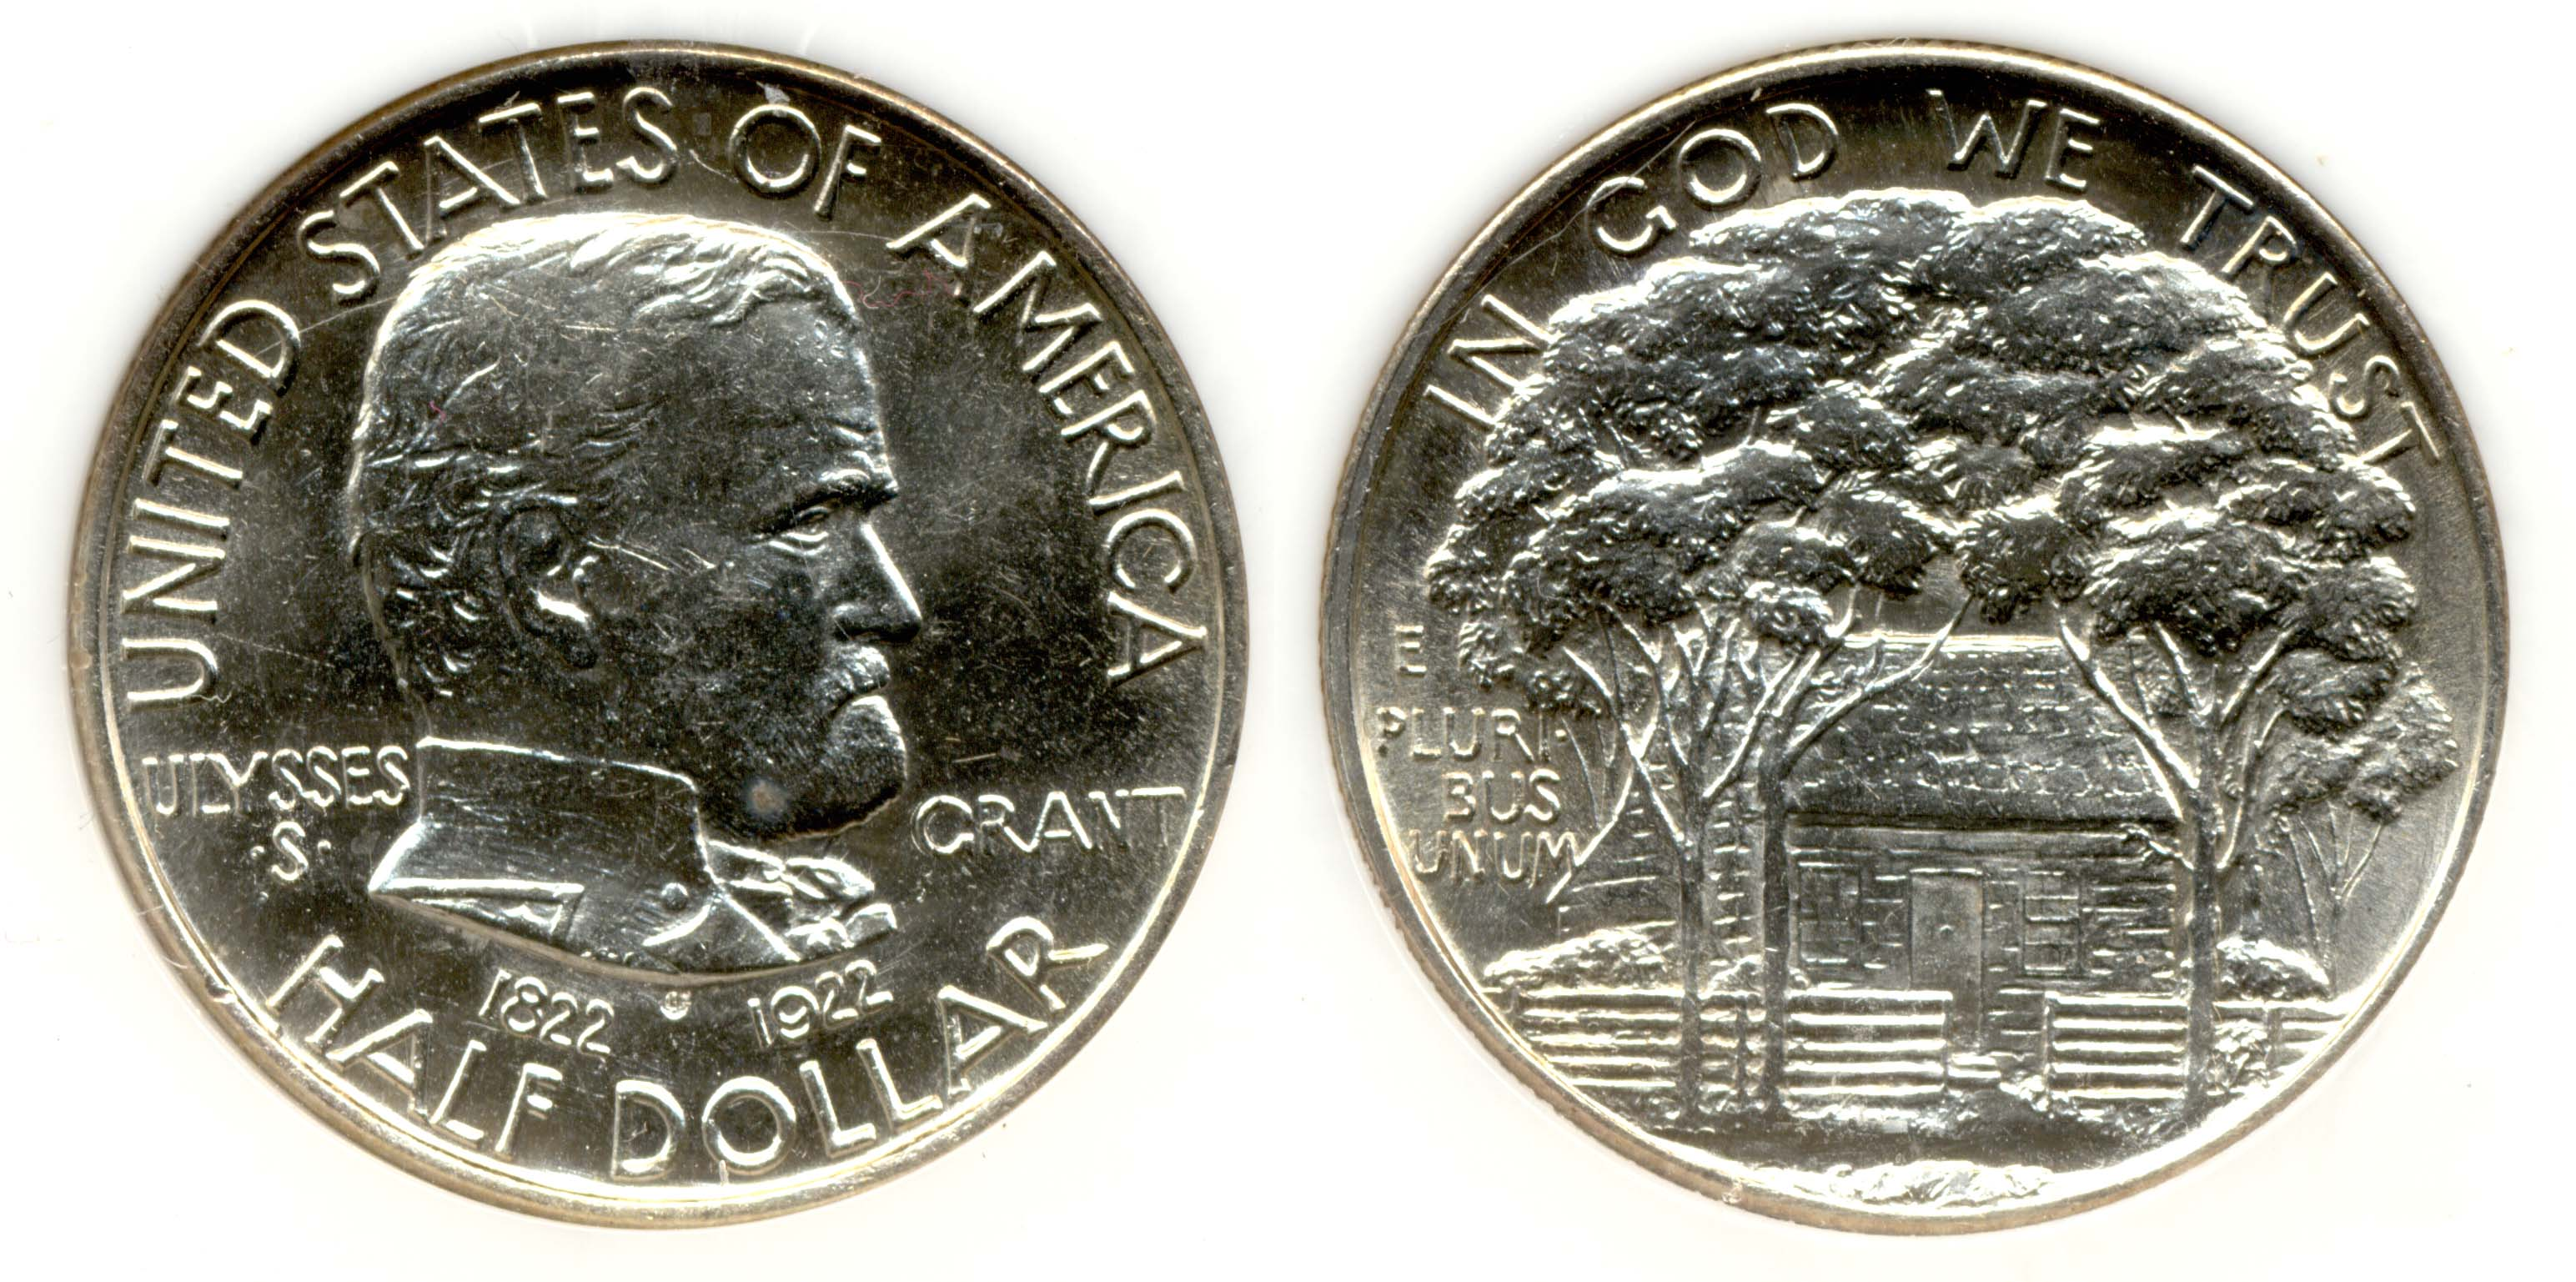 1922 Grant Commemorative Half Dollar PCI MS-64